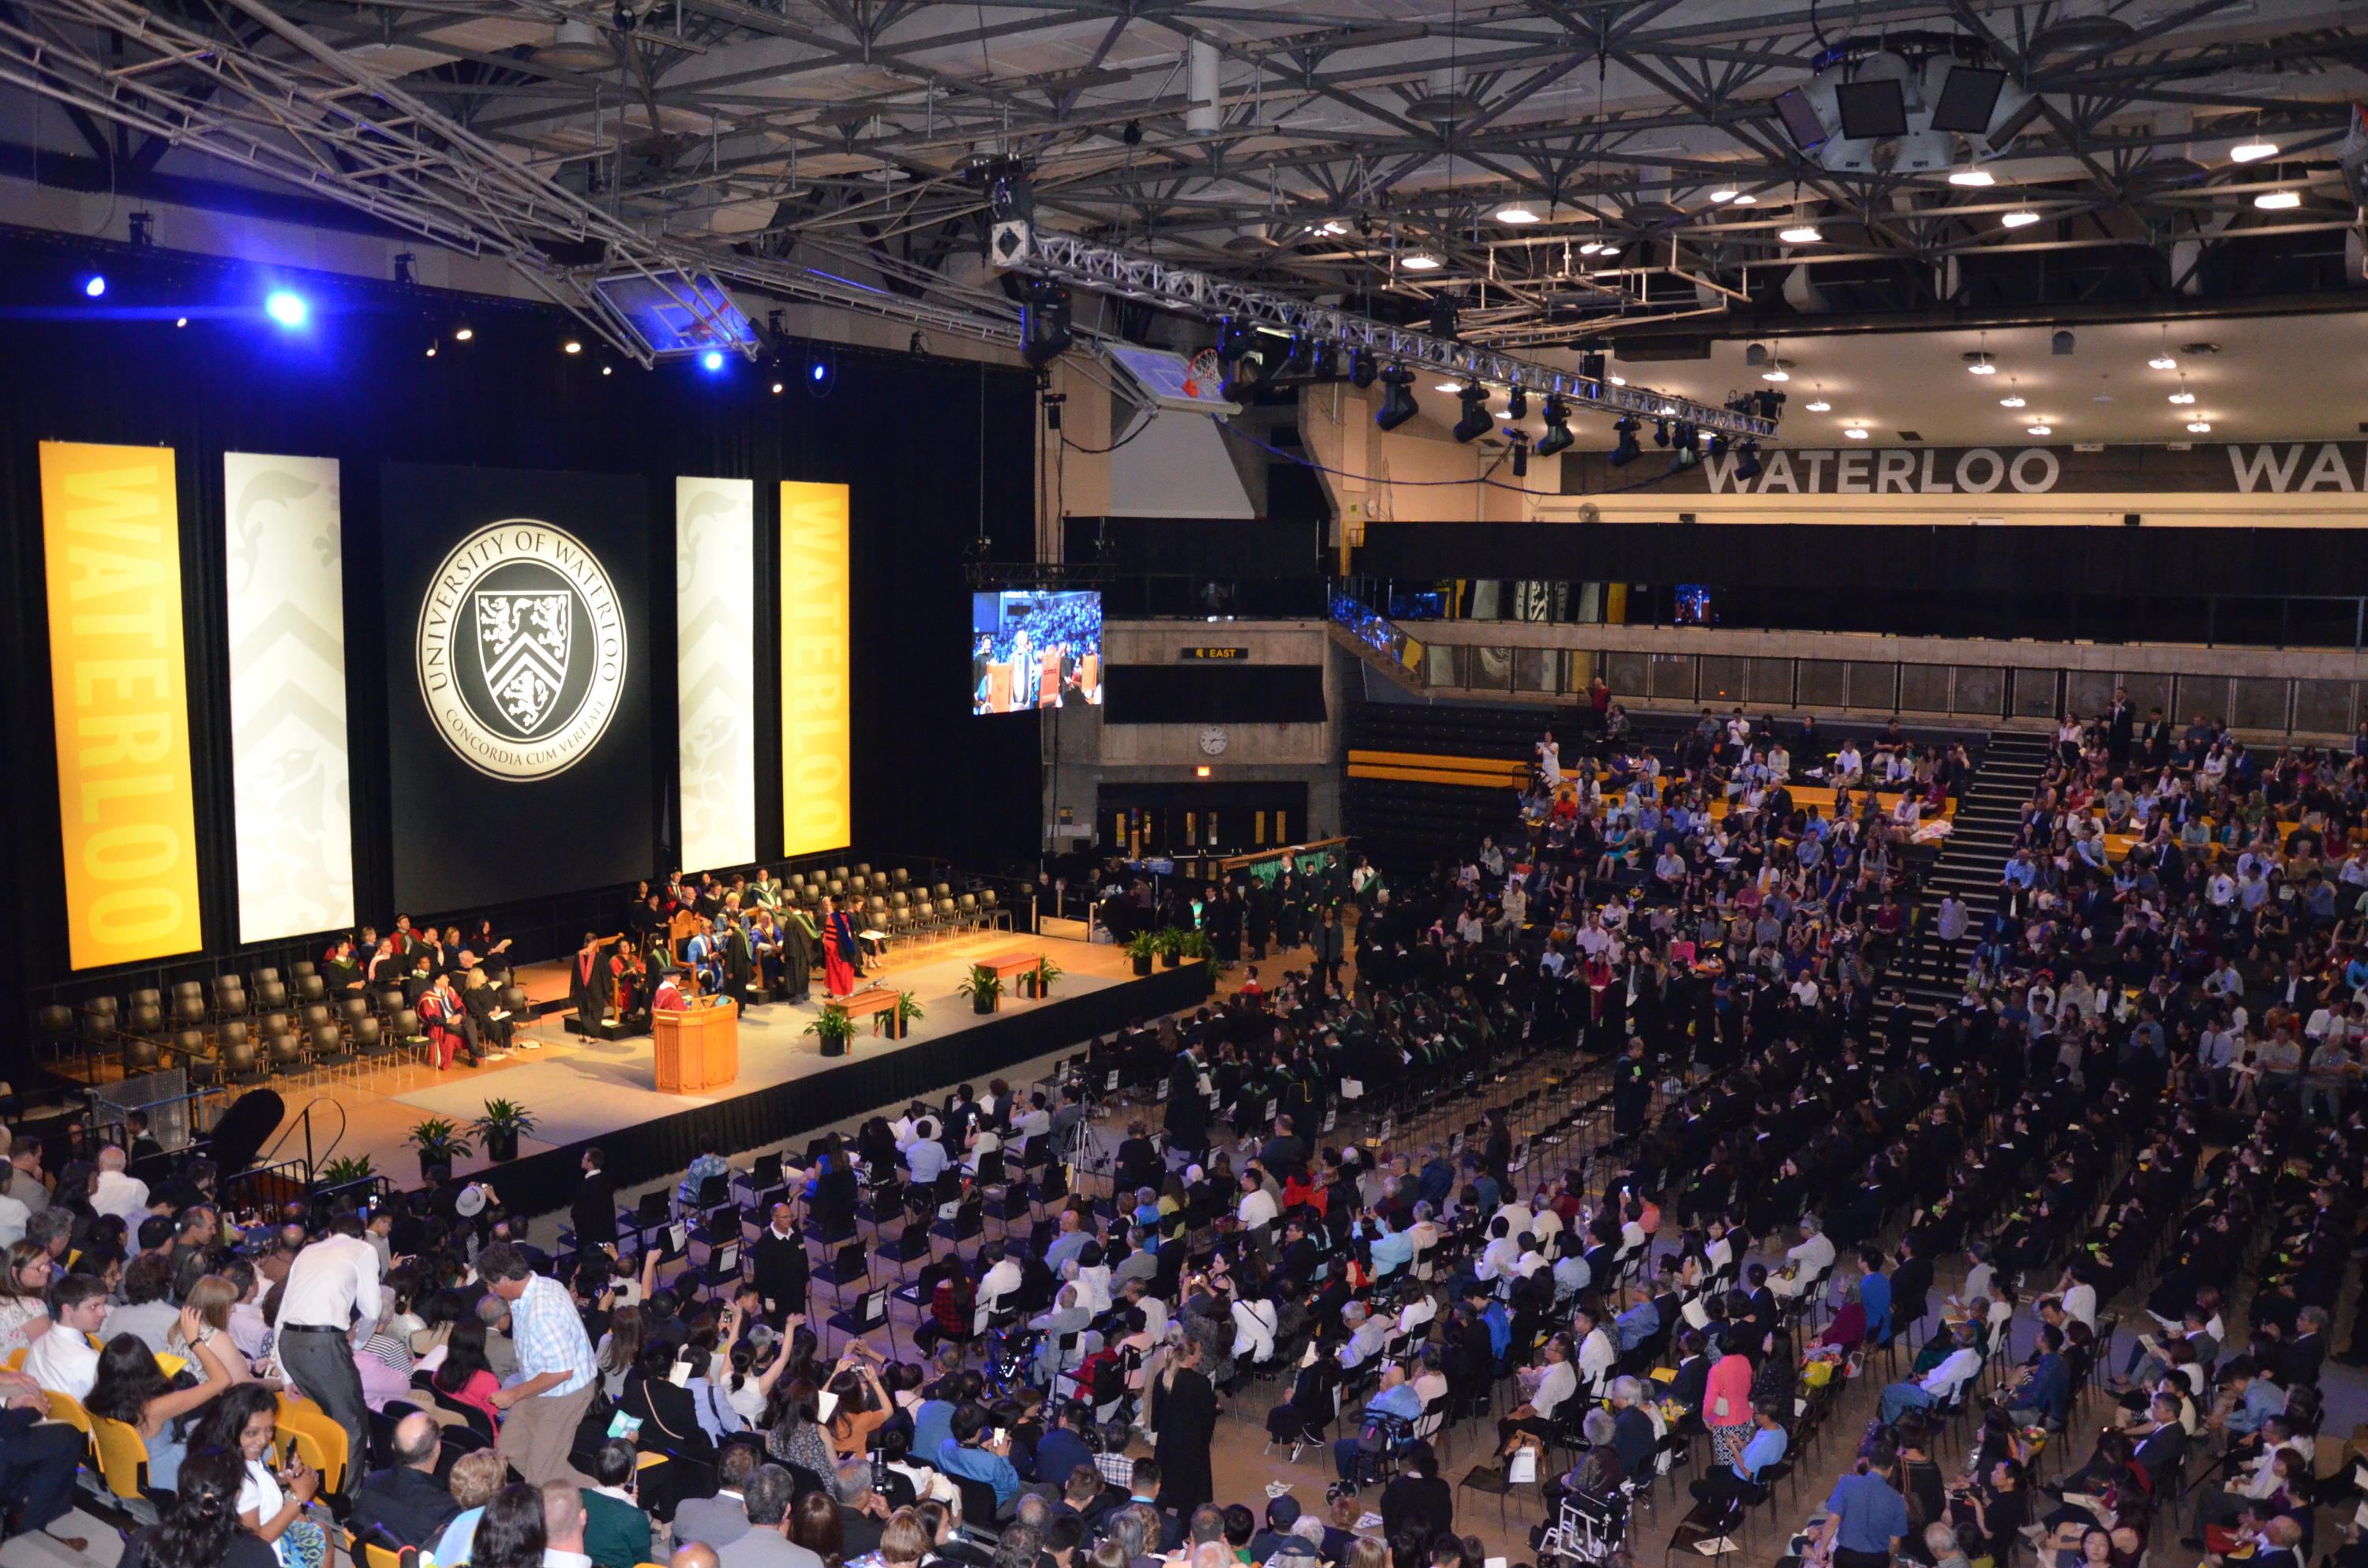 Convocation ceremony hall